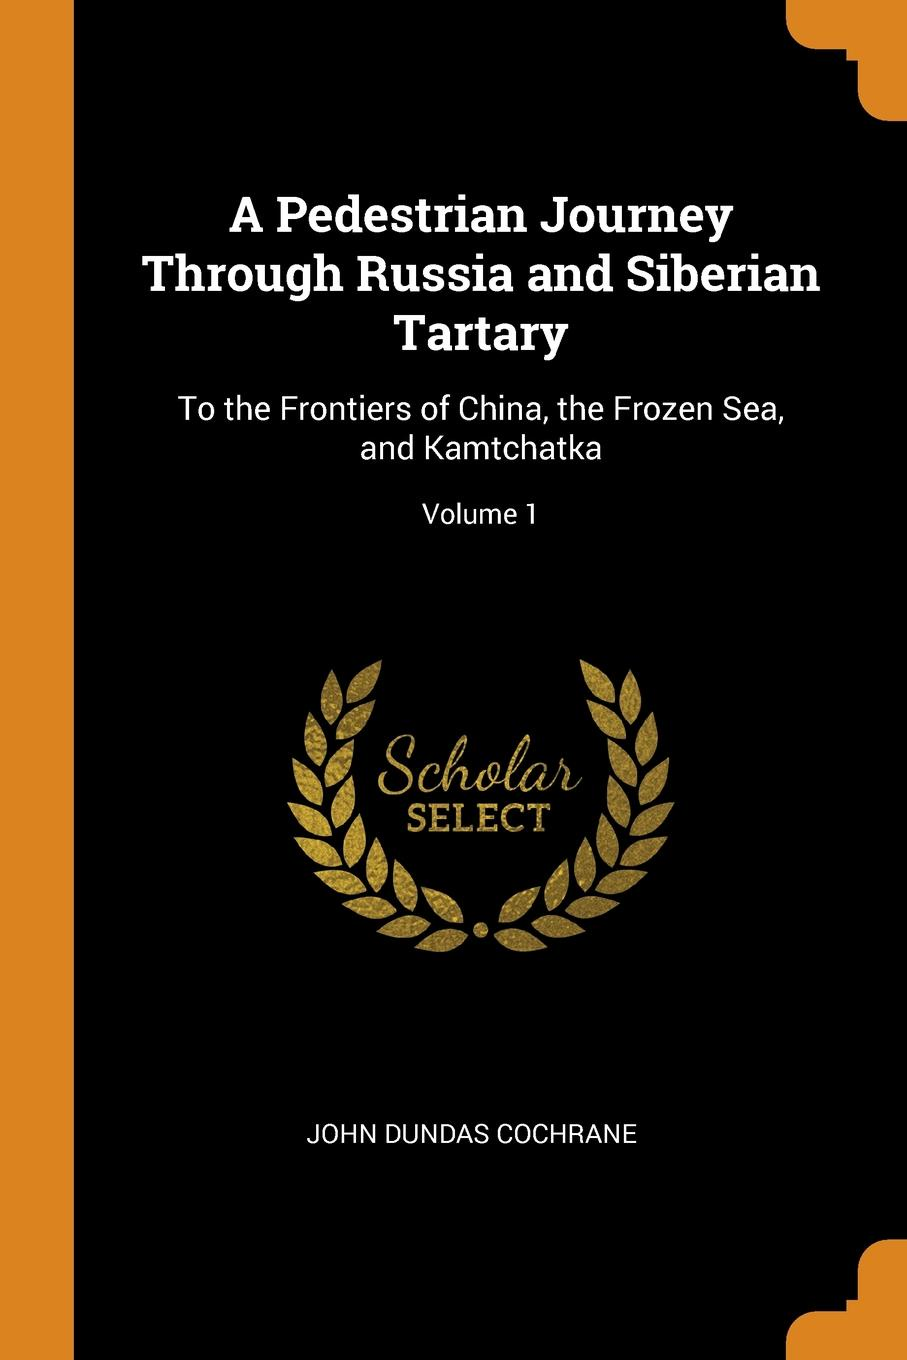 John Dundas Cochrane A Pedestrian Journey Through Russia and Siberian Tartary. To the Frontiers of China, the Frozen Sea, and Kamtchatka; Volume 1 john dundas cochrane narrative of a pedestrian journey through russia and siberian tartary from the frontiers of china to the frozen sea and kamchatka vol 1